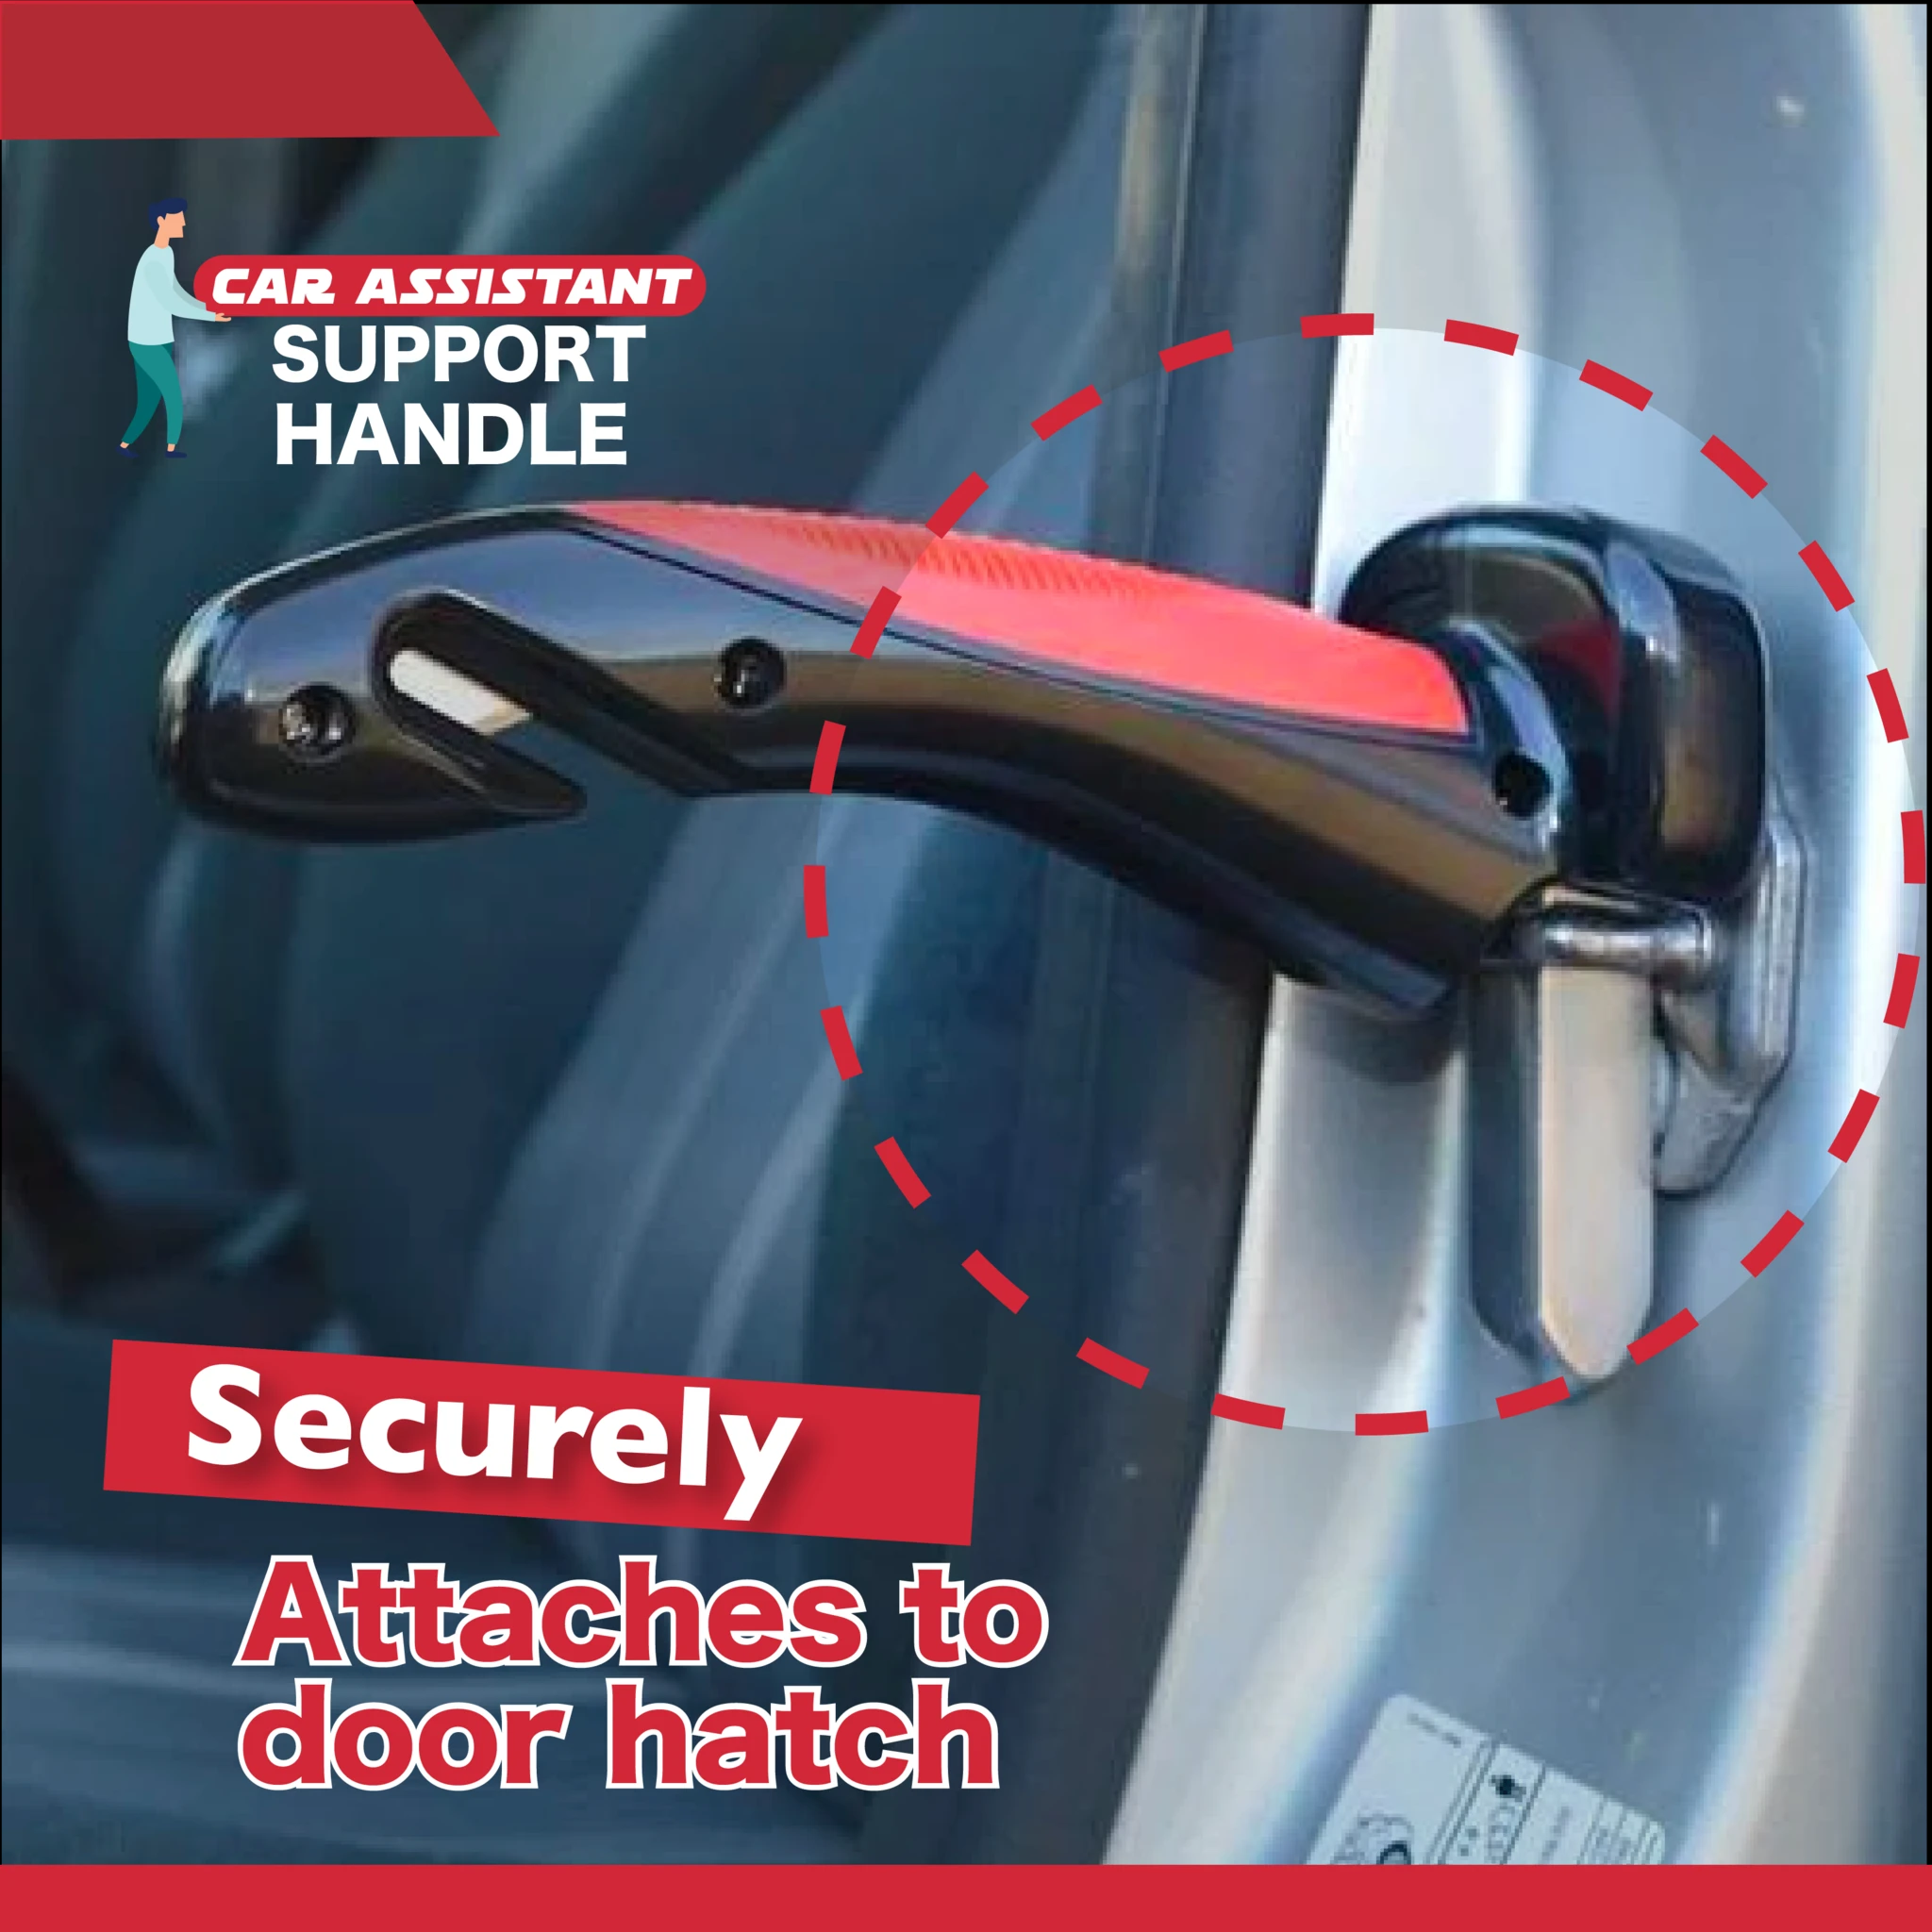 Car Assistant Support Handle